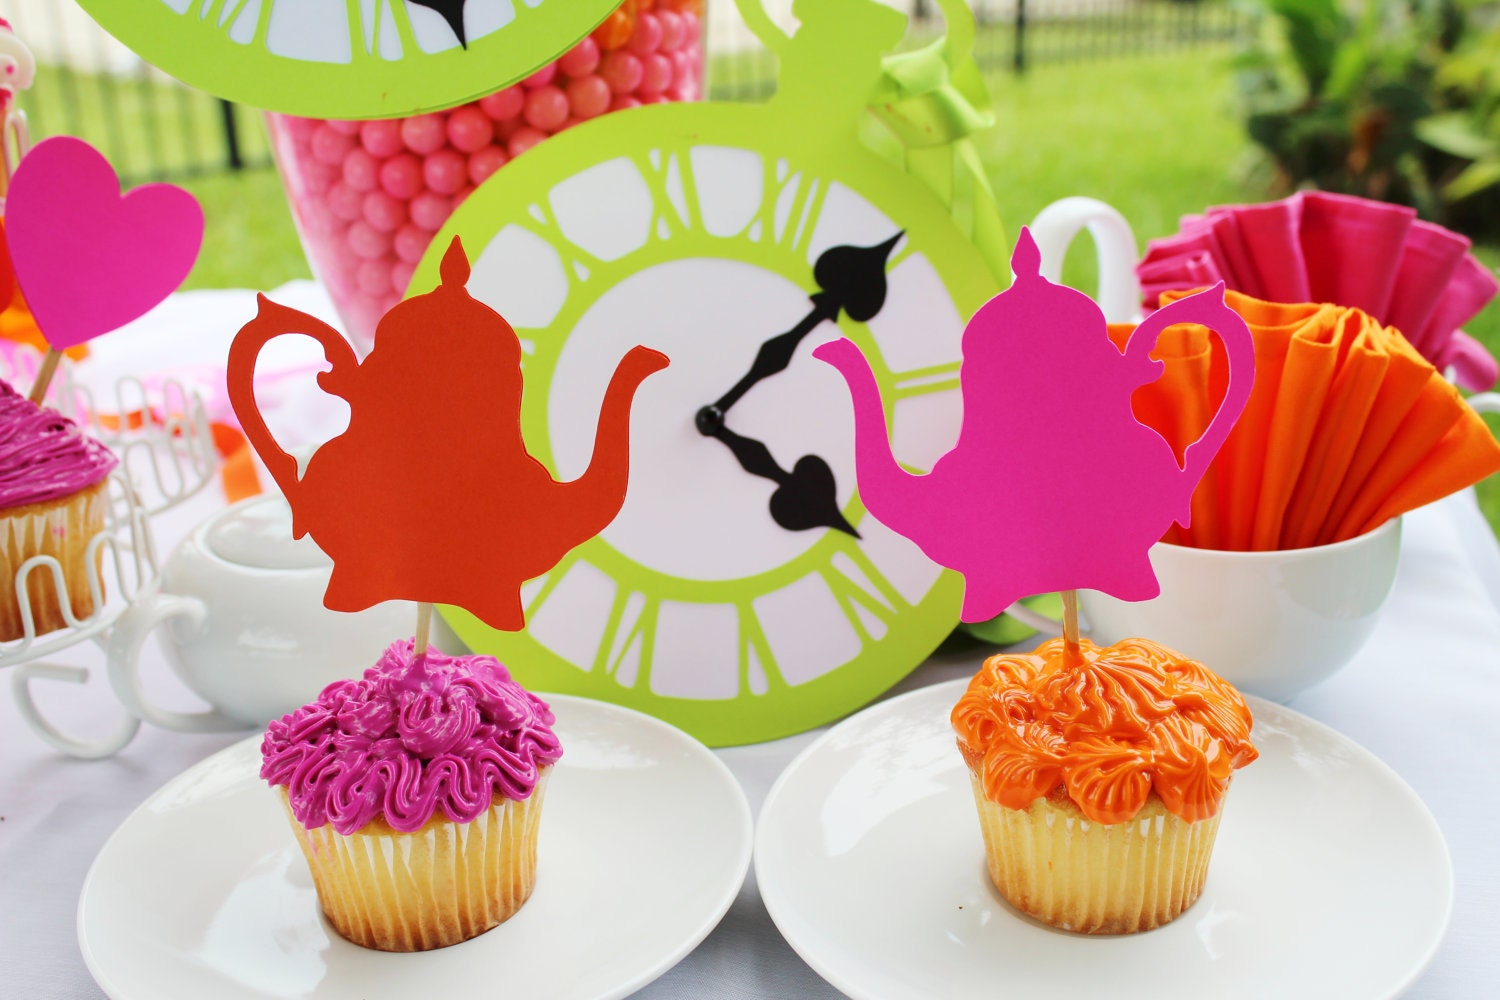 Alice In Wonderland Party Supplies - Cupcake Toppers- 12 Pink Orange Antique Teapots Toppers - Tea Party